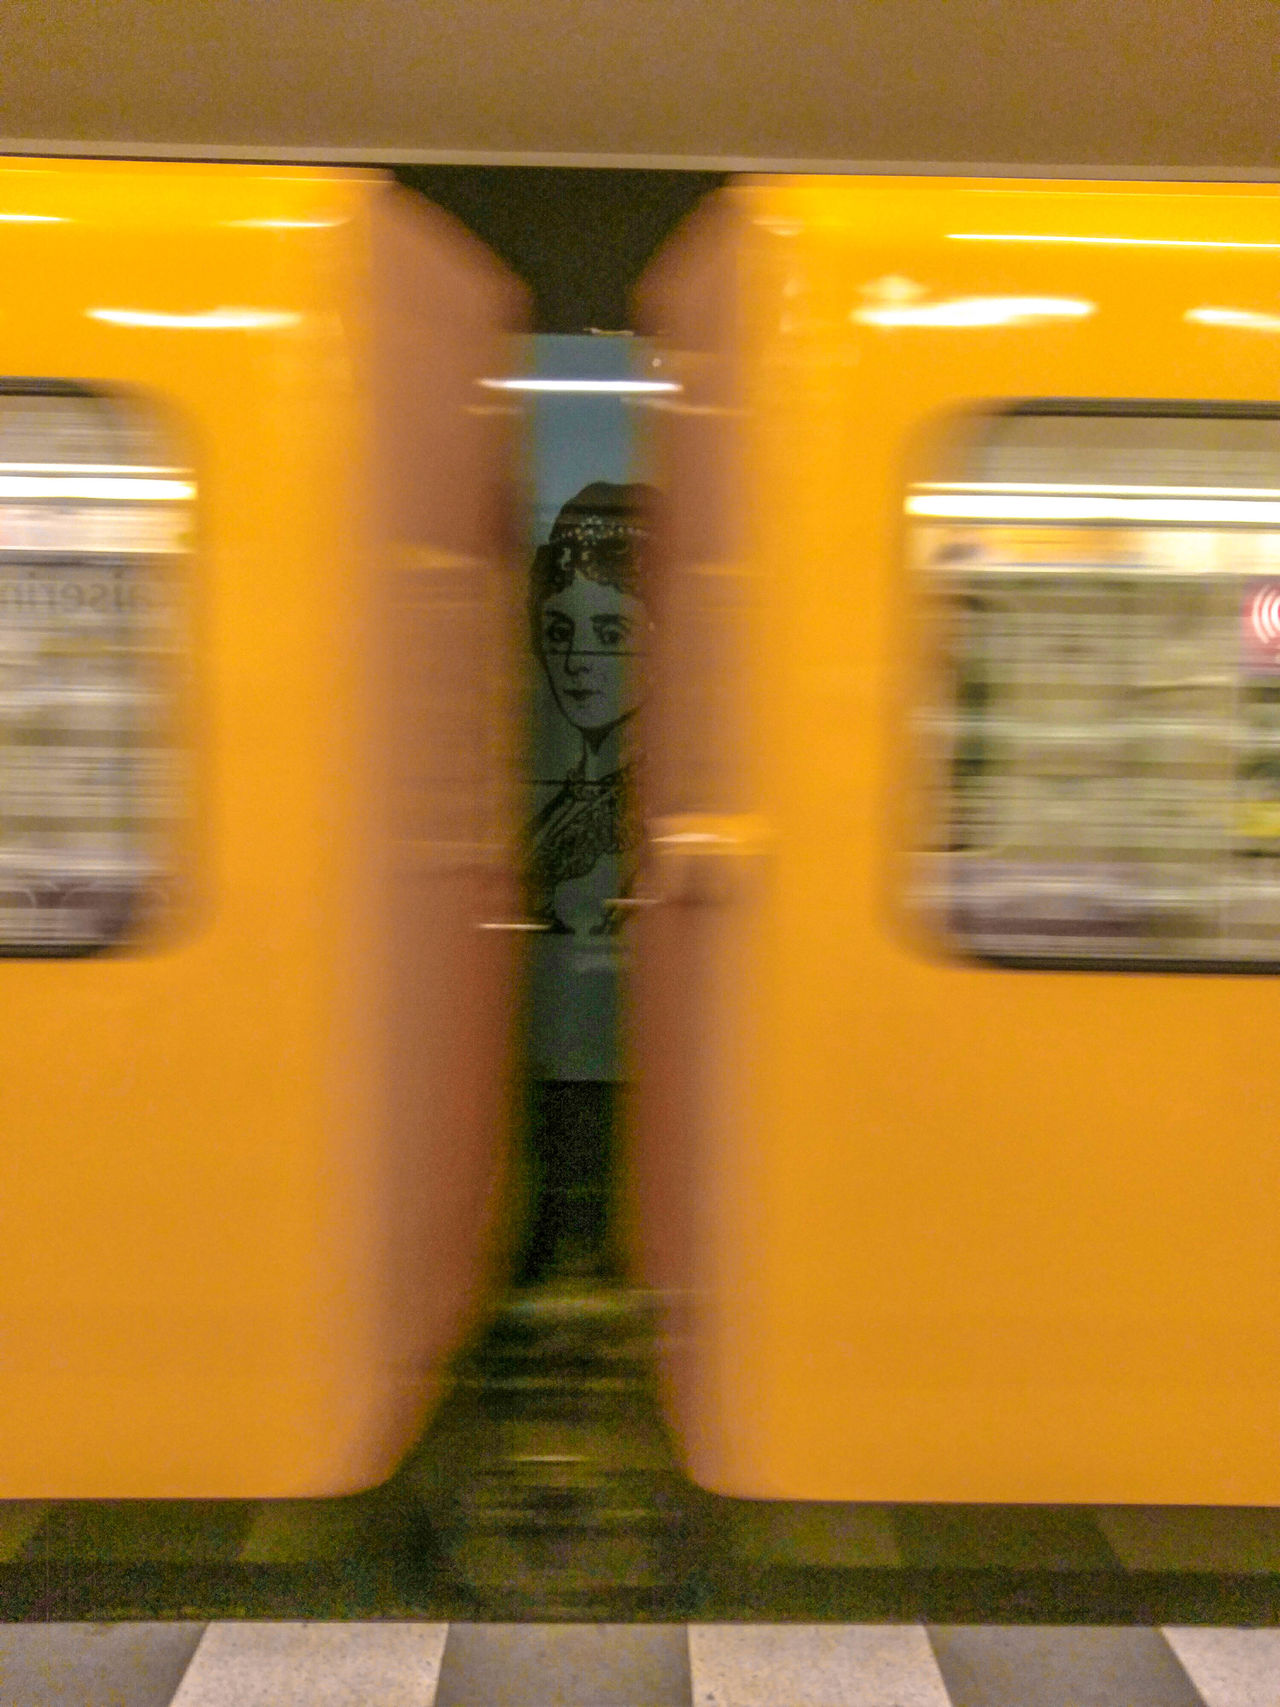 Random Underground Photo Berlin Bvg Commuting Moving Mystery Public Transportation Subway Train Train Station Transportation Ubahn Ubahn Berlin Underground Untergrund Yellow